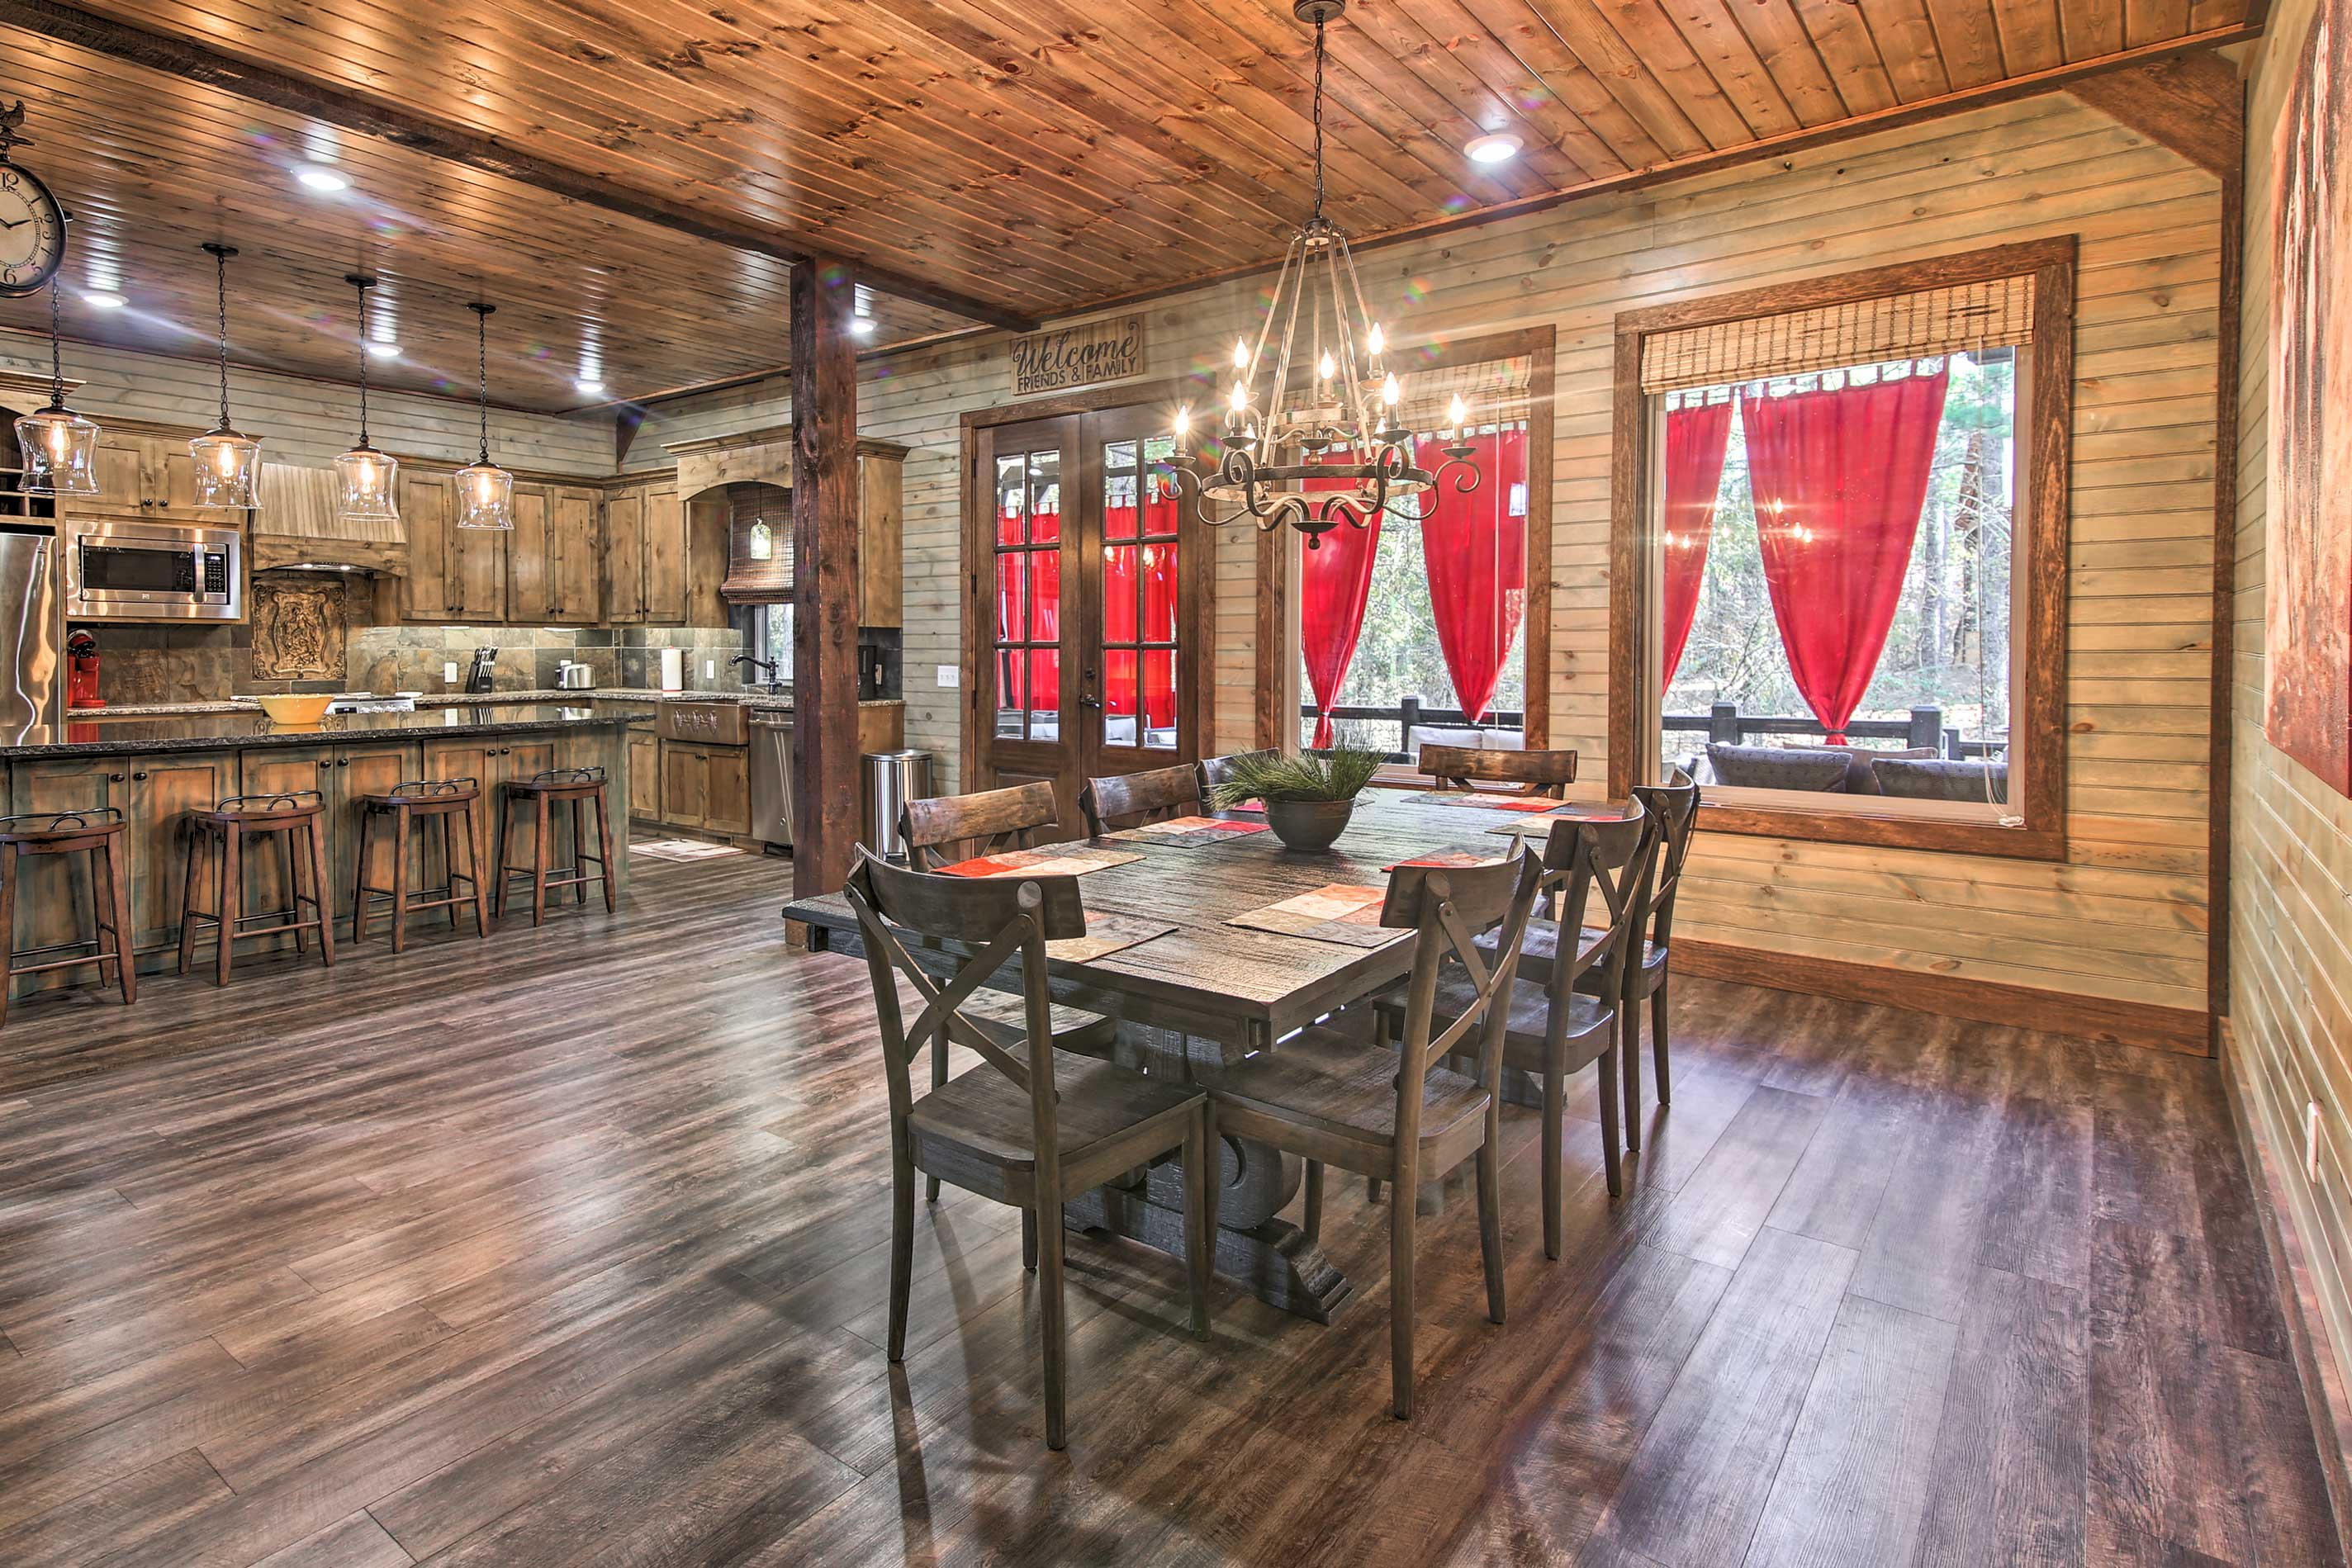 Host a holiday meal at this welcoming Oklahoma cabin!